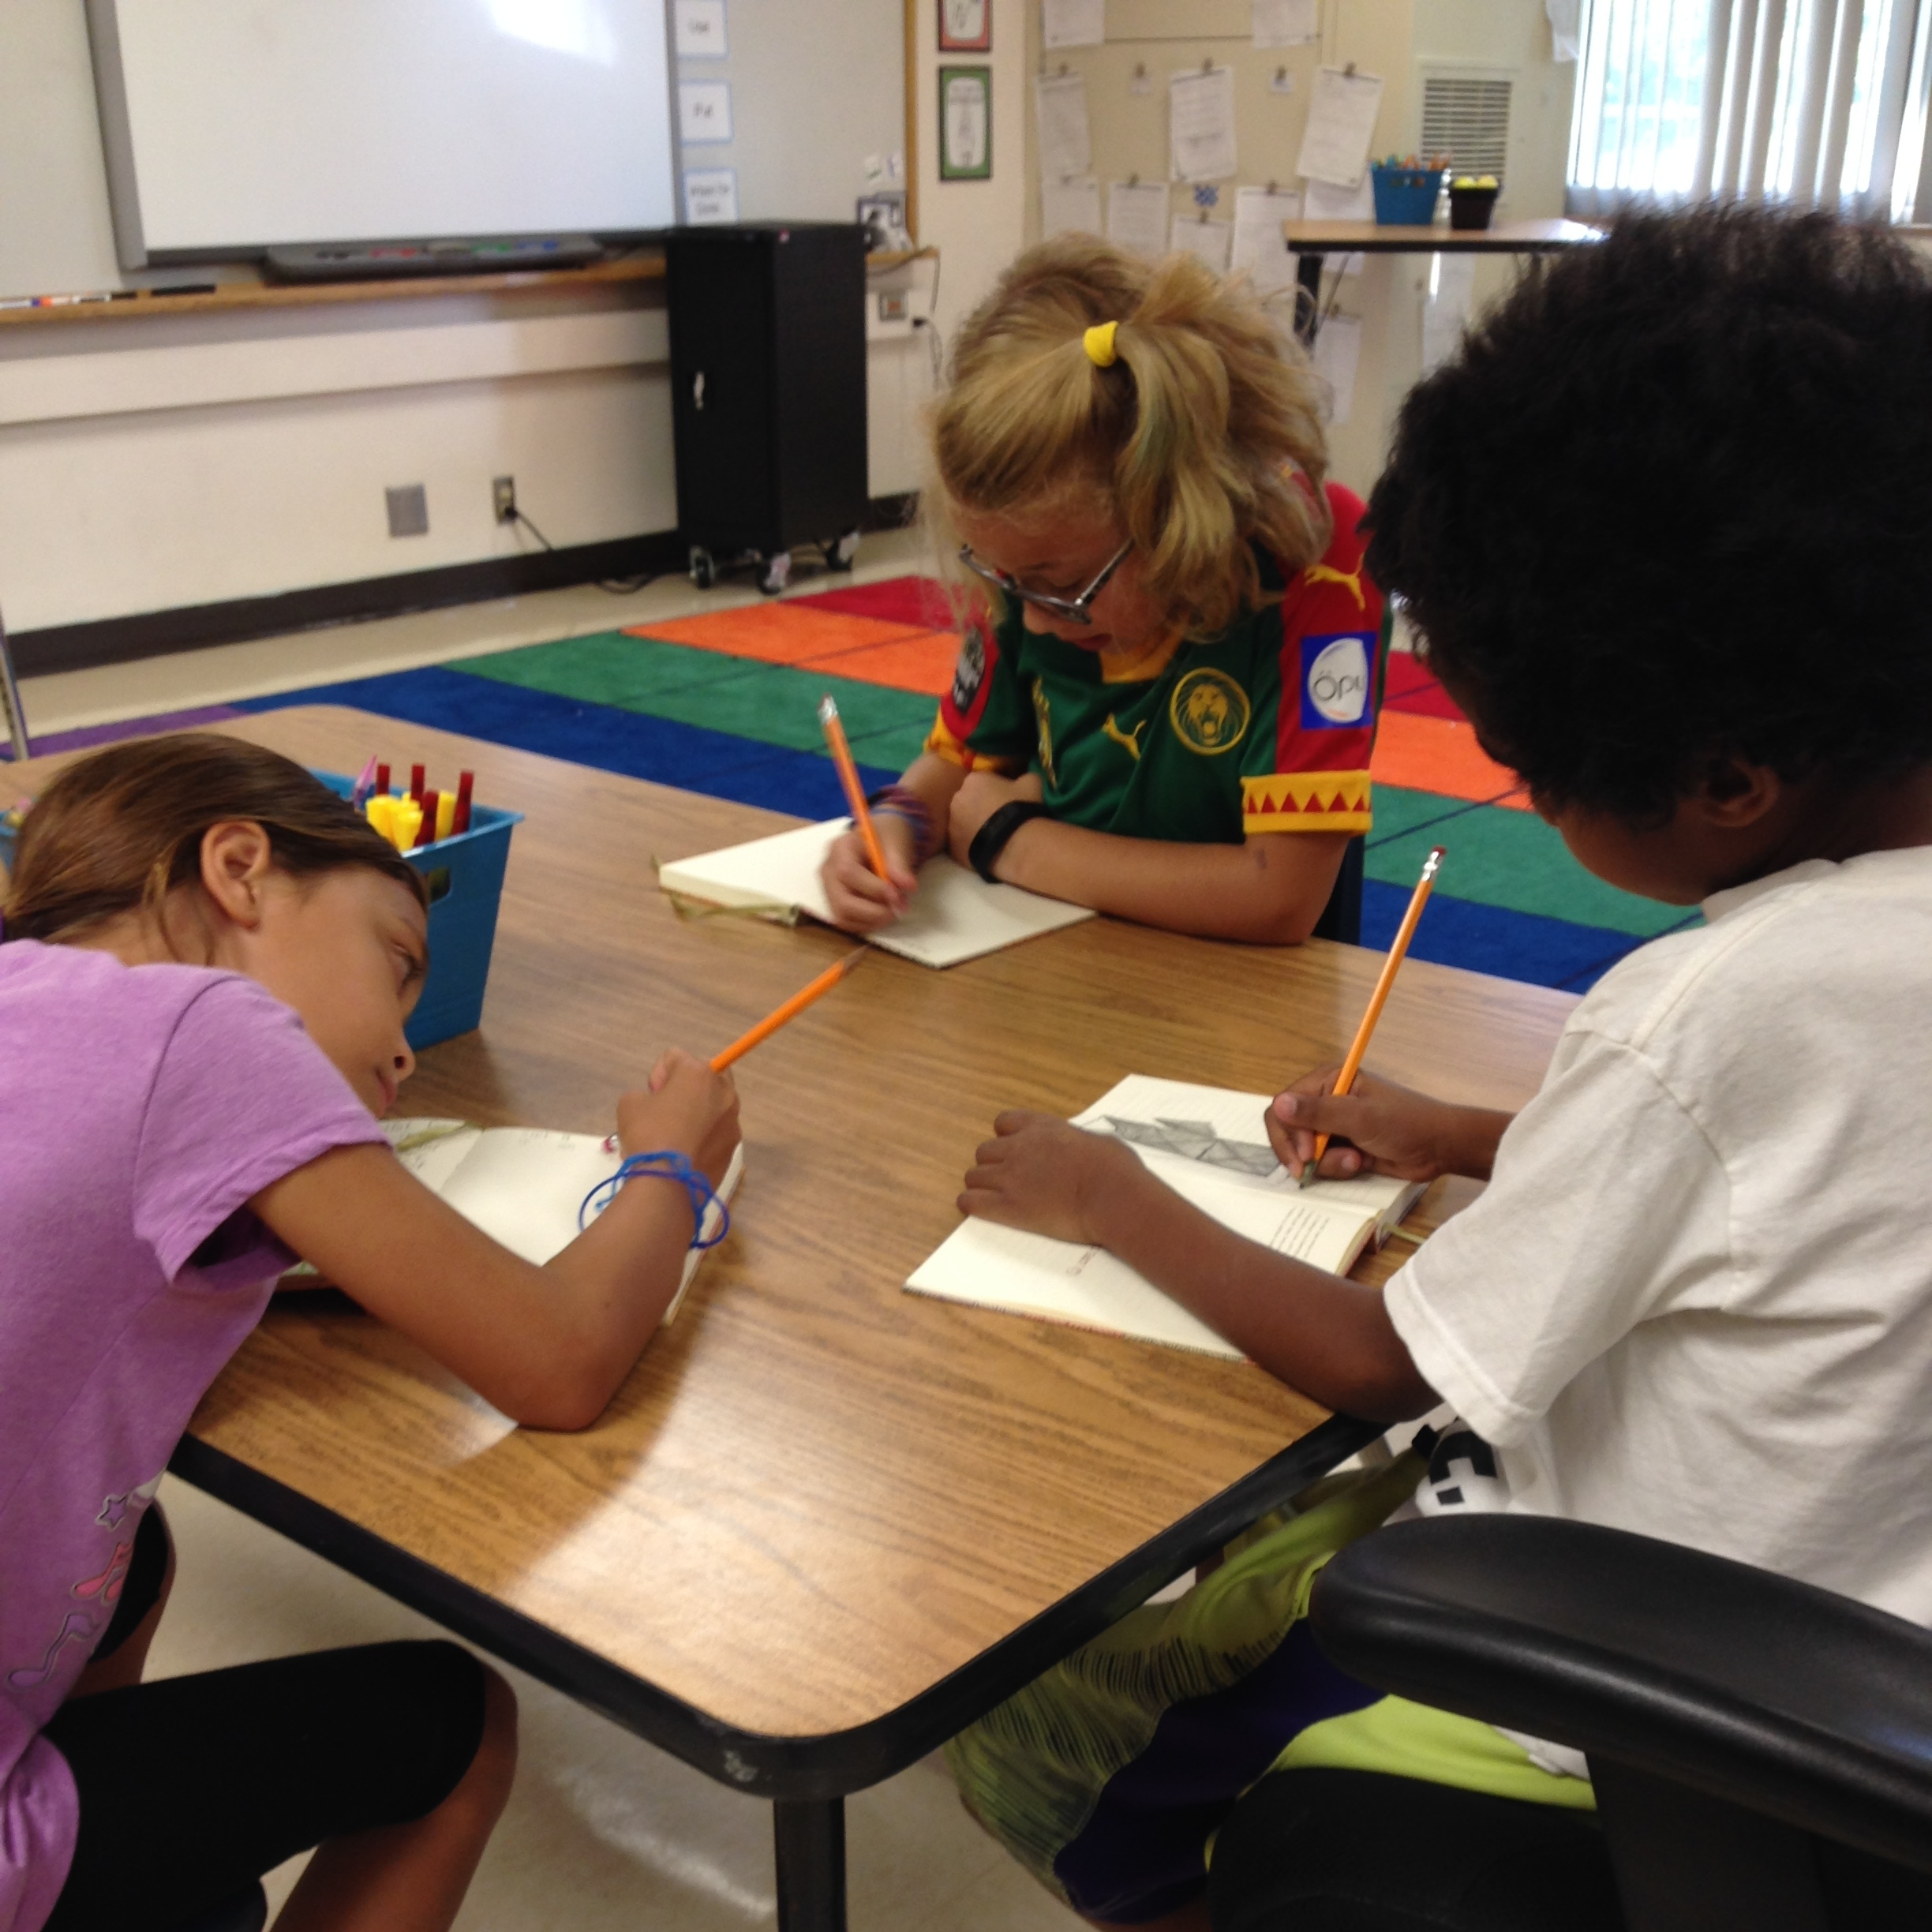 In the Classroom - What happens when kids starteach day by writing down a list of things they are grateful for?